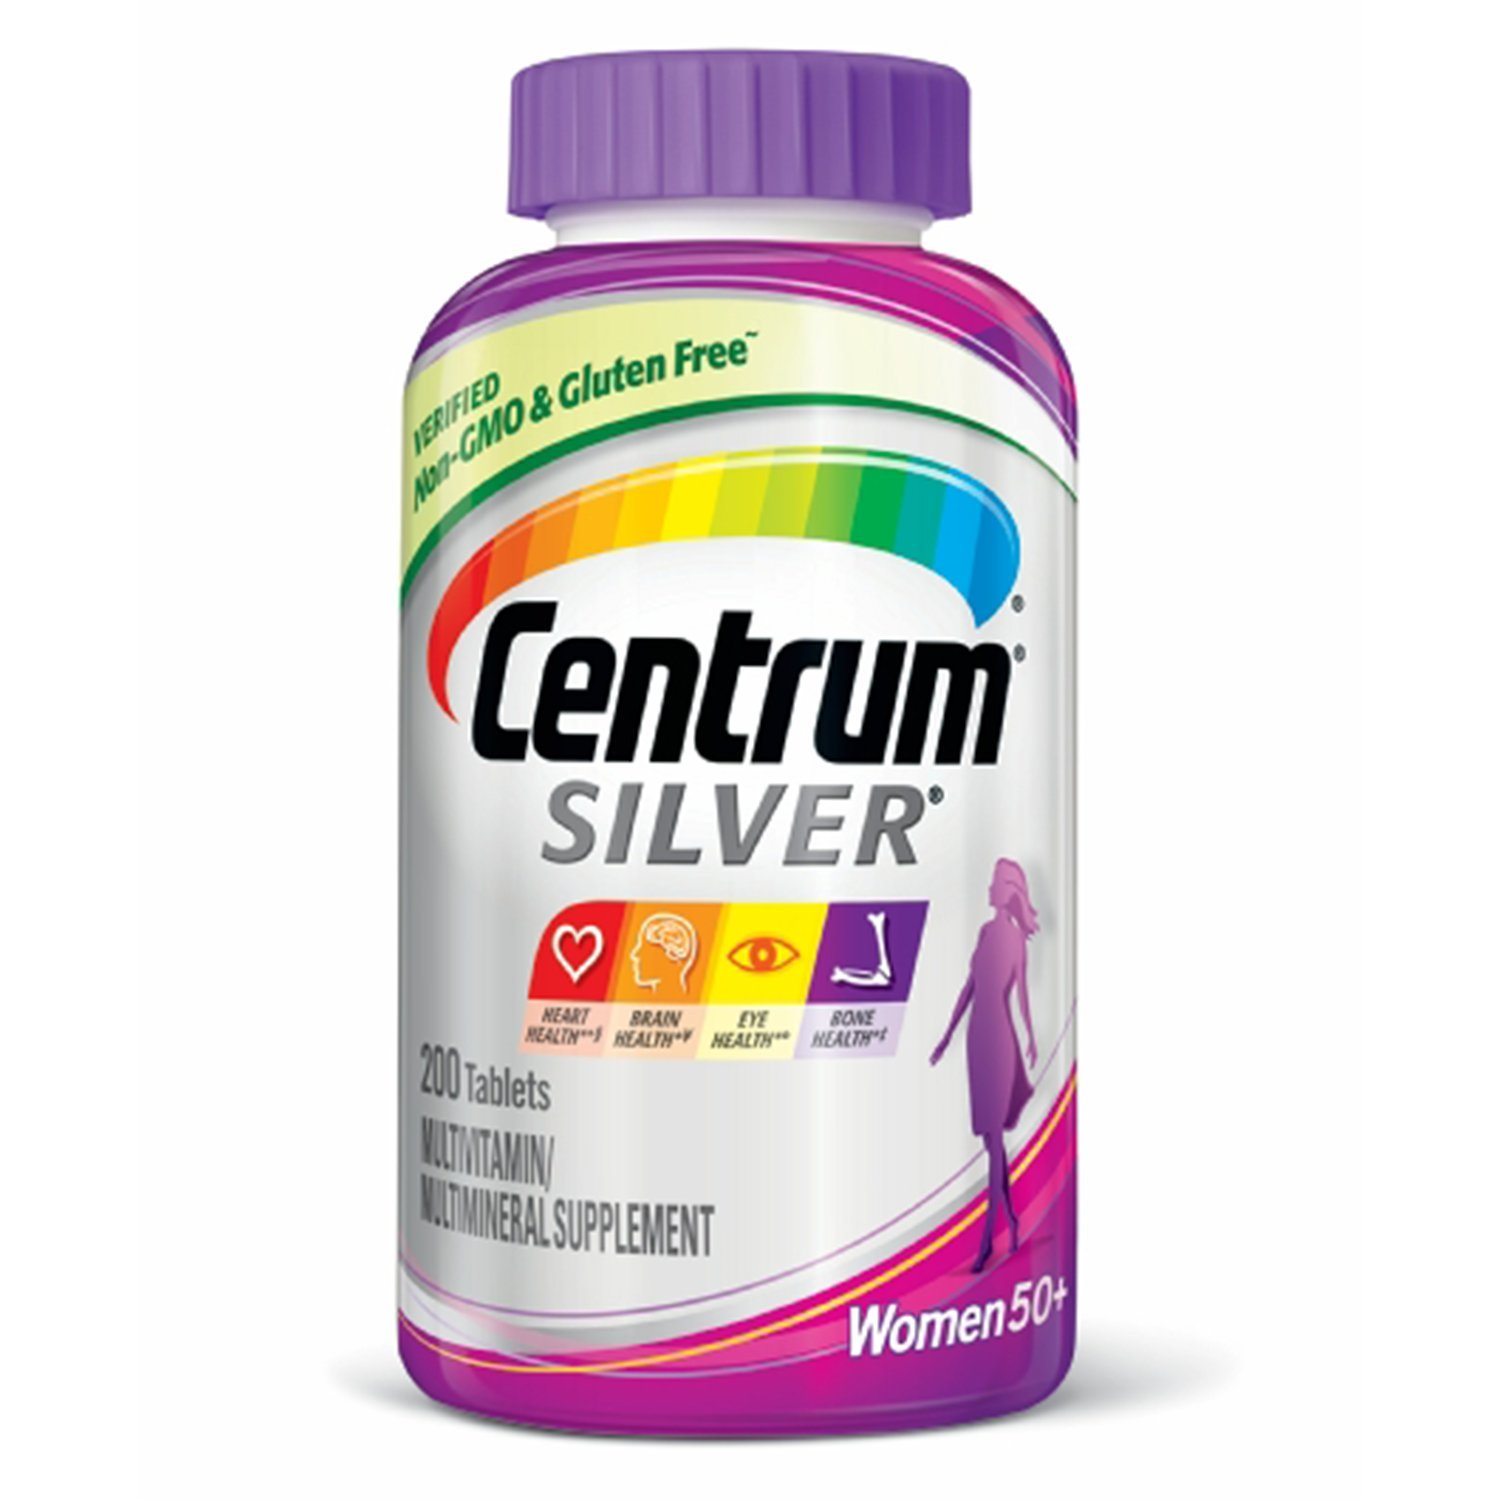 Centrum Silver Women (200 Count) Multivitamin / Multimineral Supplement Tablet, Vitamin D3, Age 50+